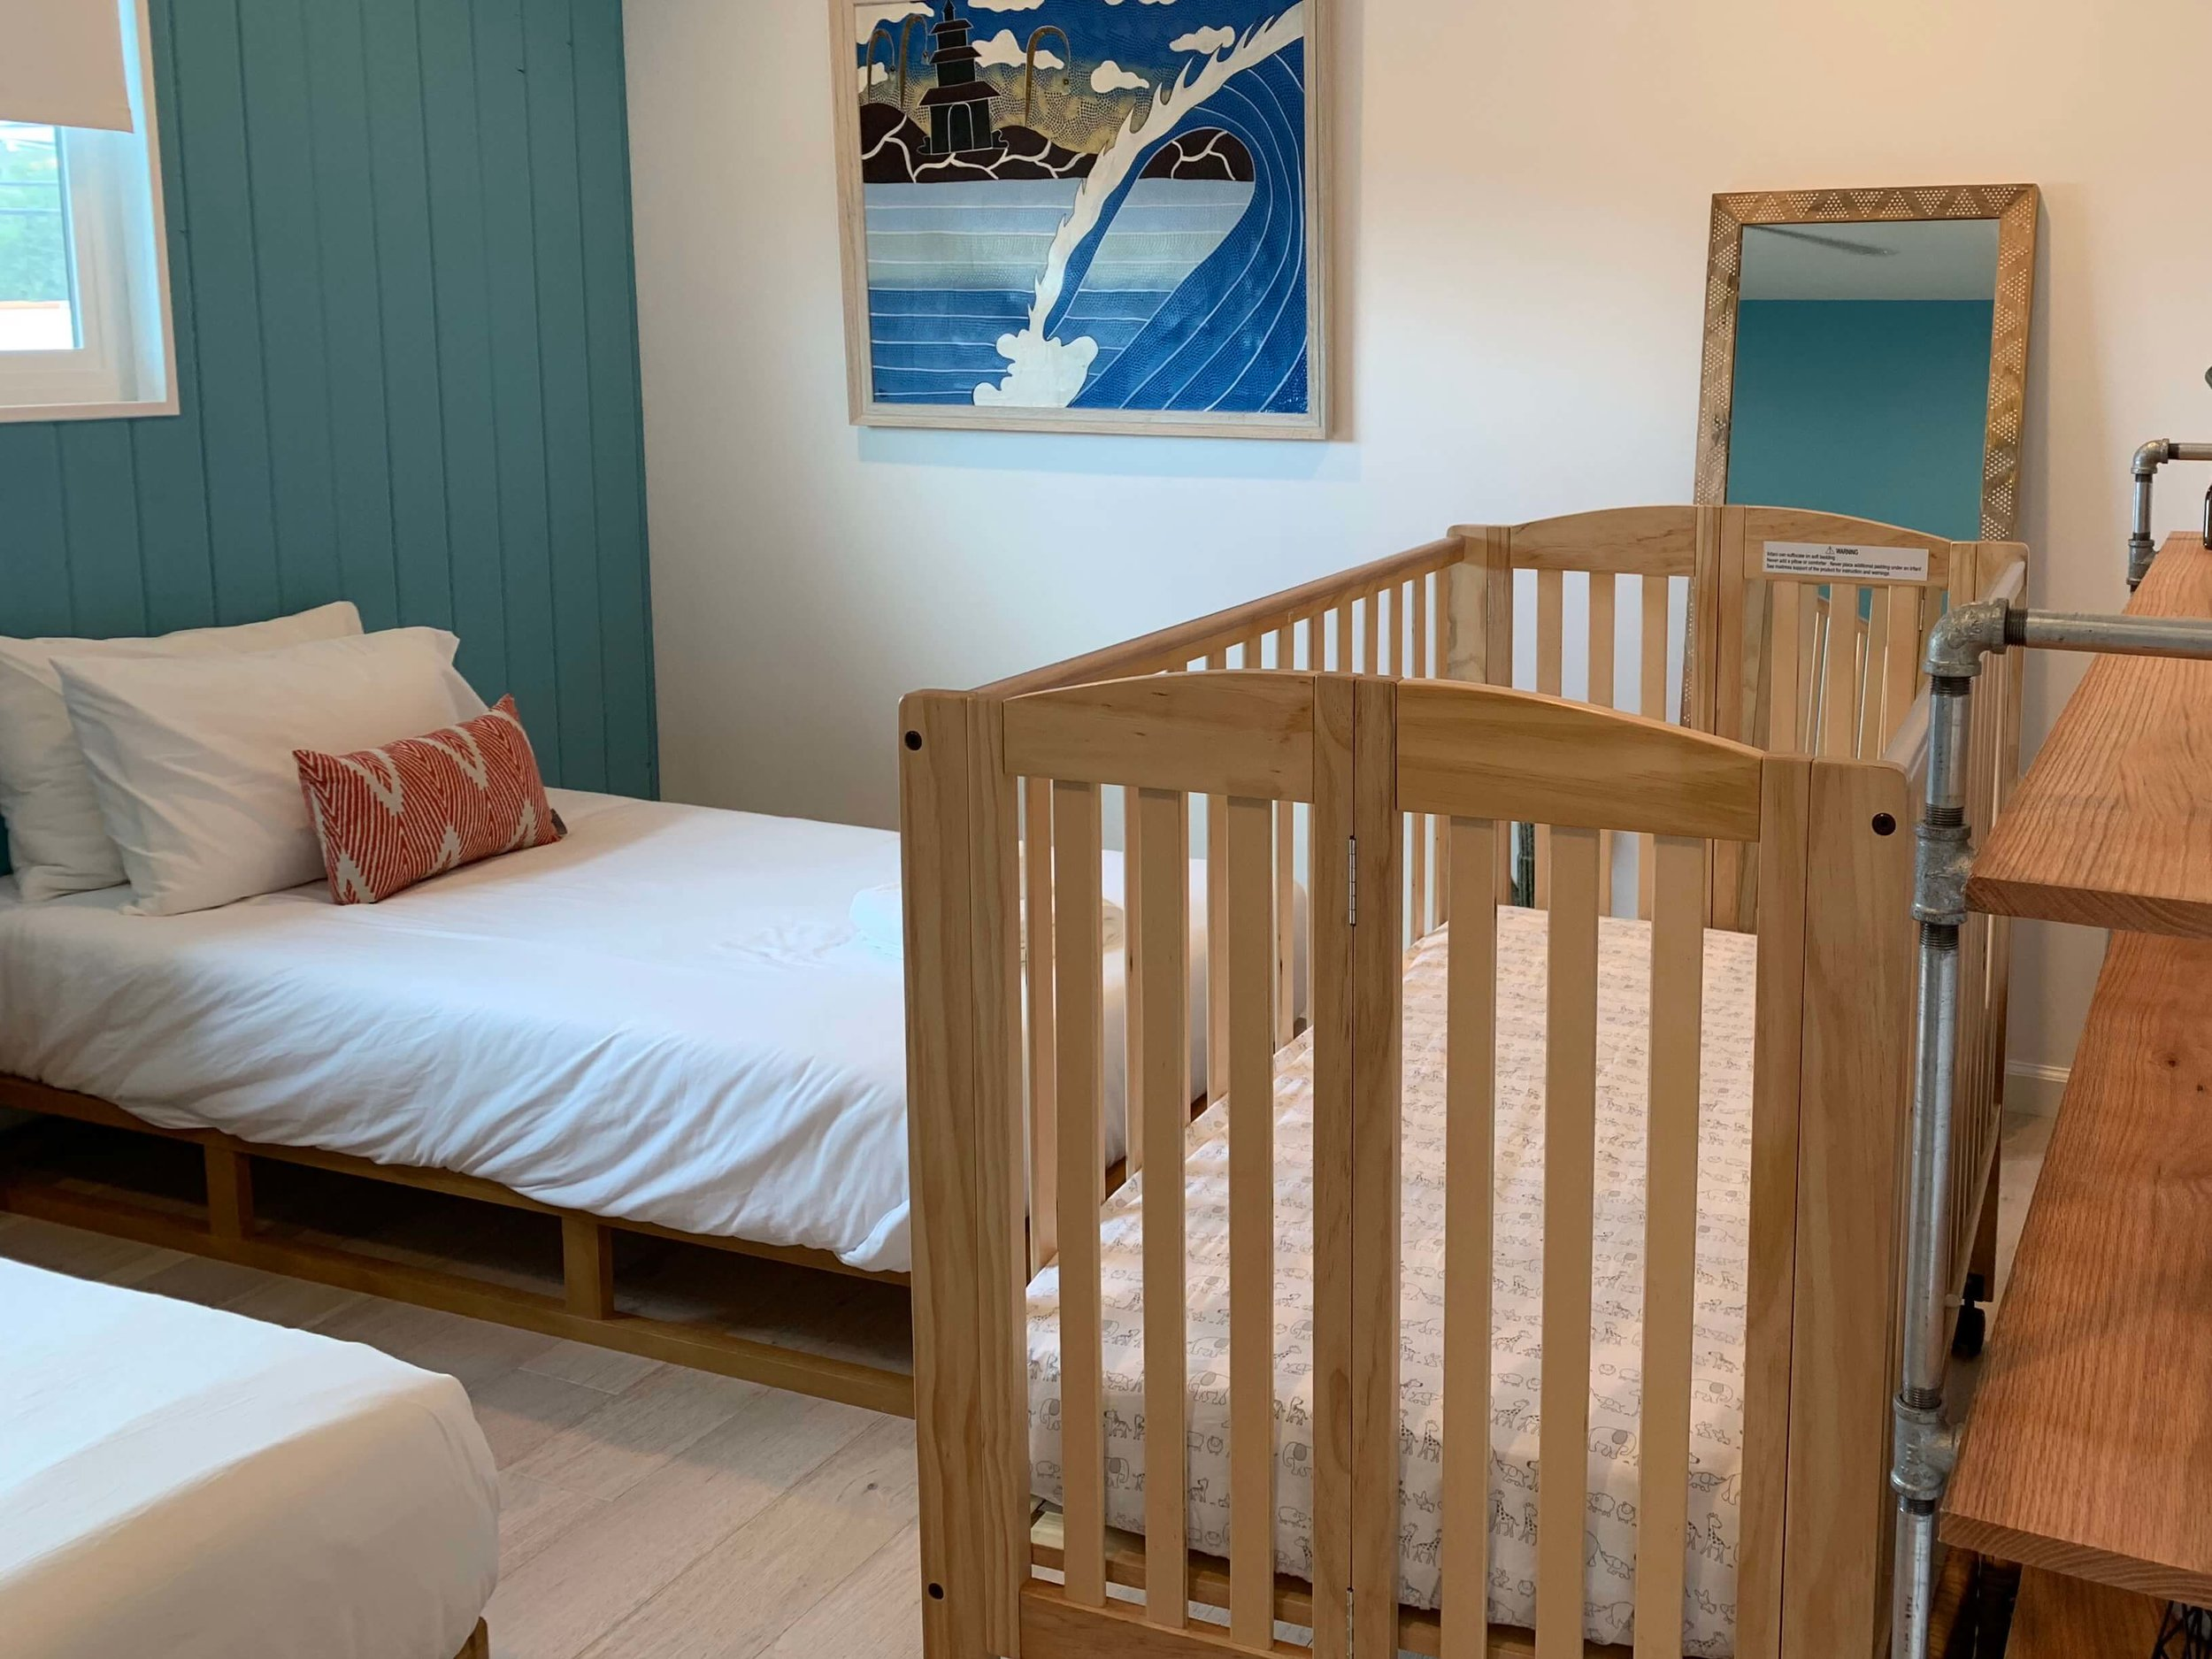 Actual recent (July 2019) VacaDUN Full Size Crib rental for a traveling family's vacation home in San Clemente, CA. In addition to the crib, they rented a toddler bed, beach toys, baby soothers, a Graco high chair, Sunba sun tent and more for three nights— for less than $100. With free delivery and setup!